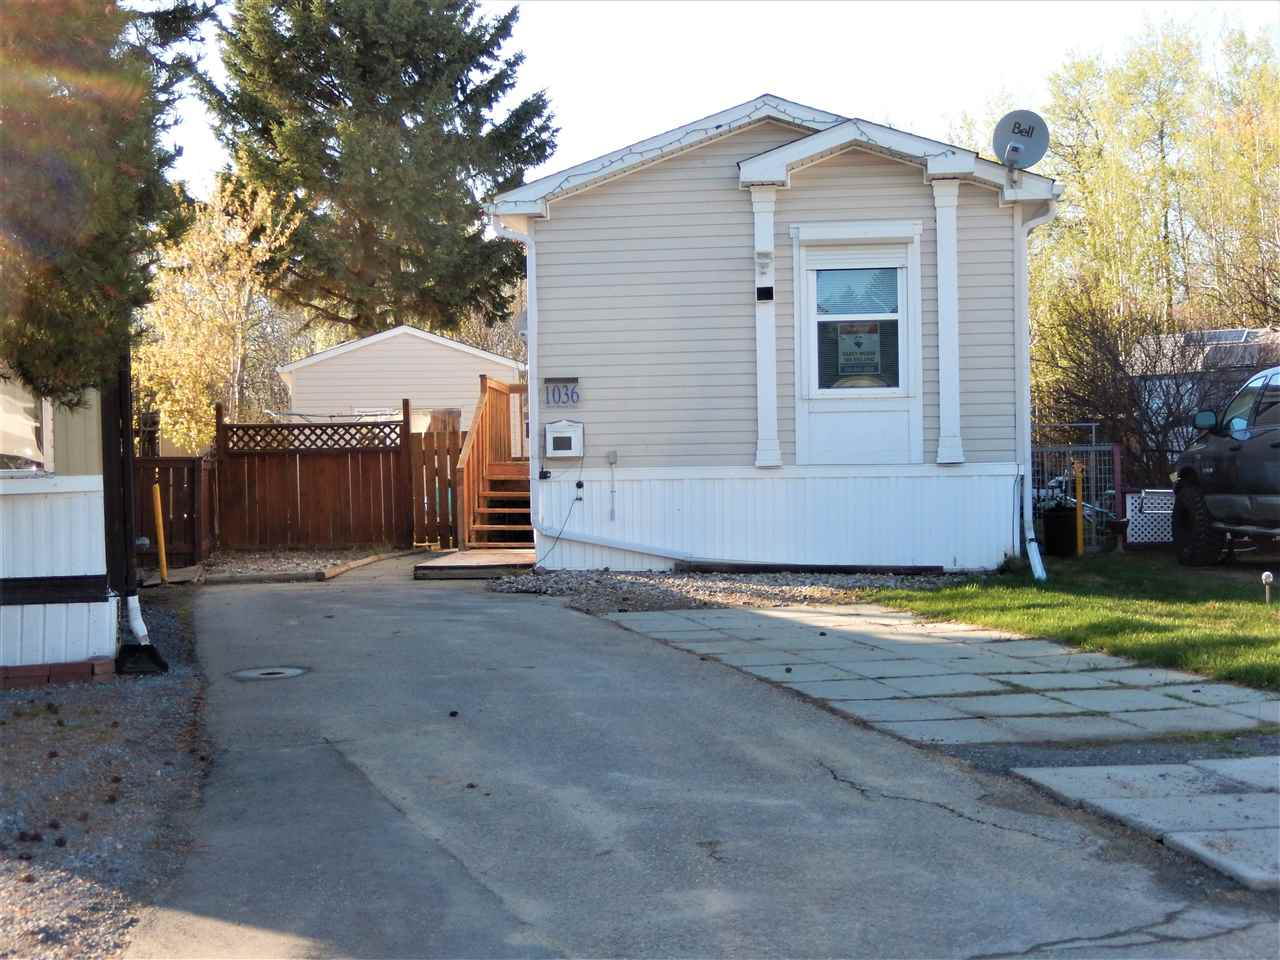 This 2008 with a LARGE DETACHED INSULATED/POWERED WORKSHOP sits on a private pie shaped lot BACKING ONTO TREES. The lot is FENCED and has a SHED & PORTABLE SUNROOM. The SHED has NEWER SHINGLES, is INSULATED & has POWER.  Sooo much to offer!  The home itself has 3 BEDRS (master/ensuite at the back), with 2 FULL BATHROOMS and a big LAUNDRY RM complete with WASHER/DRYER/FREEZER.  The home has NEWER APPLIANCES, CENTRAL AIR & OUTSIDE SHUTTERS on the windows for extra insulation and to keep the home cool in the summer.  Lots of PARKING as well! This park has much to offer and included in that lot rent is FREE use of the FITNESS CENTRE (with 4 big screen tvs). FREE use of the EQUIPPED COMMUNITY CENTRE. FREE use of the REGULATION SIZE OUTDOOR RINK...there are also PLAYGROUNDS, POND, WALKING TRAILS, STORE, GAS BAR, PUB, RESTAURANT and much more!  Westview Village is also very meticulous with their grounds & snow removal is done very efficiently.  Its a great place to live!